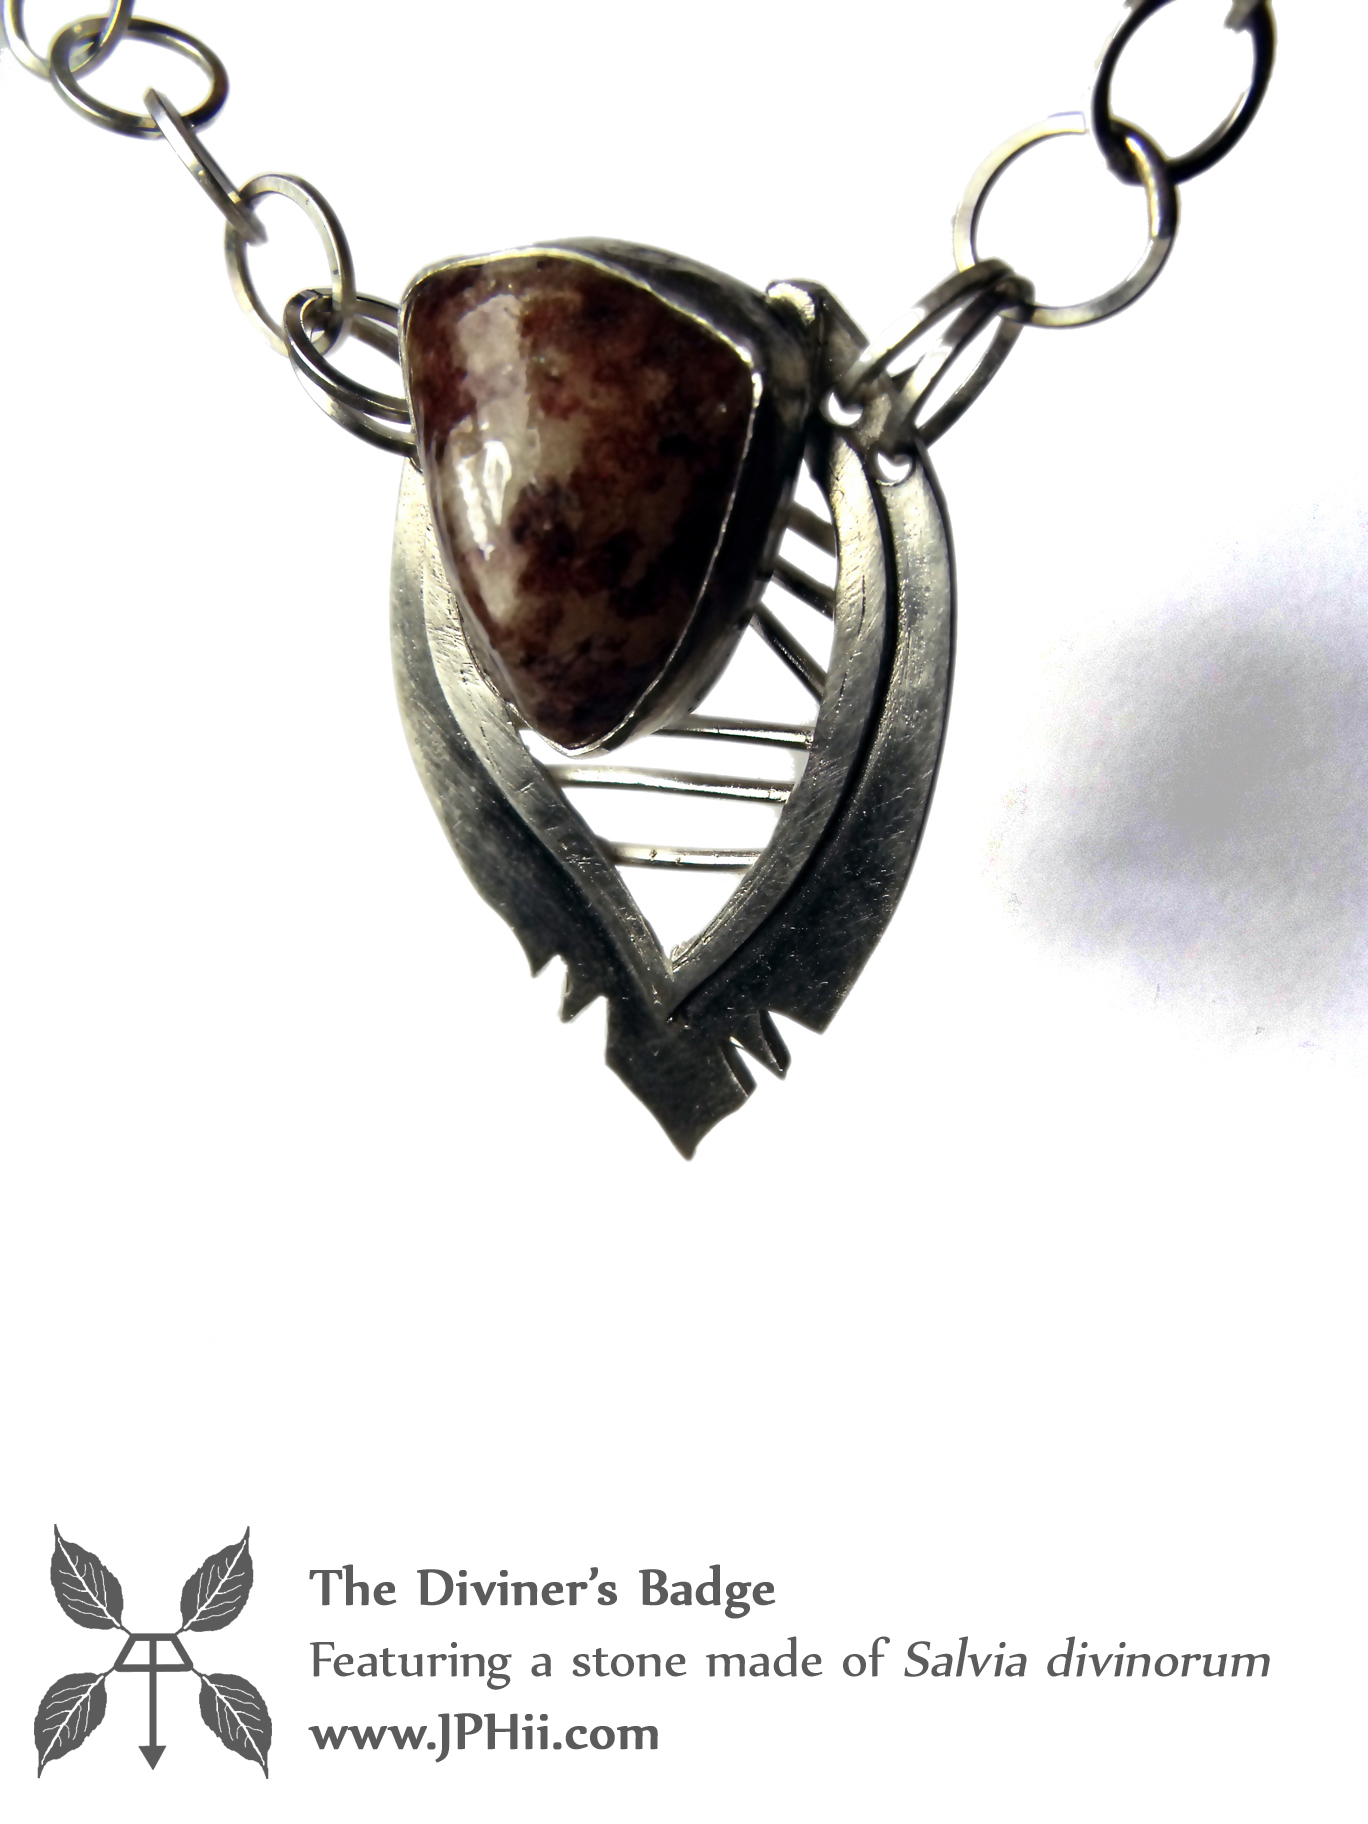 The Diviner's Badge